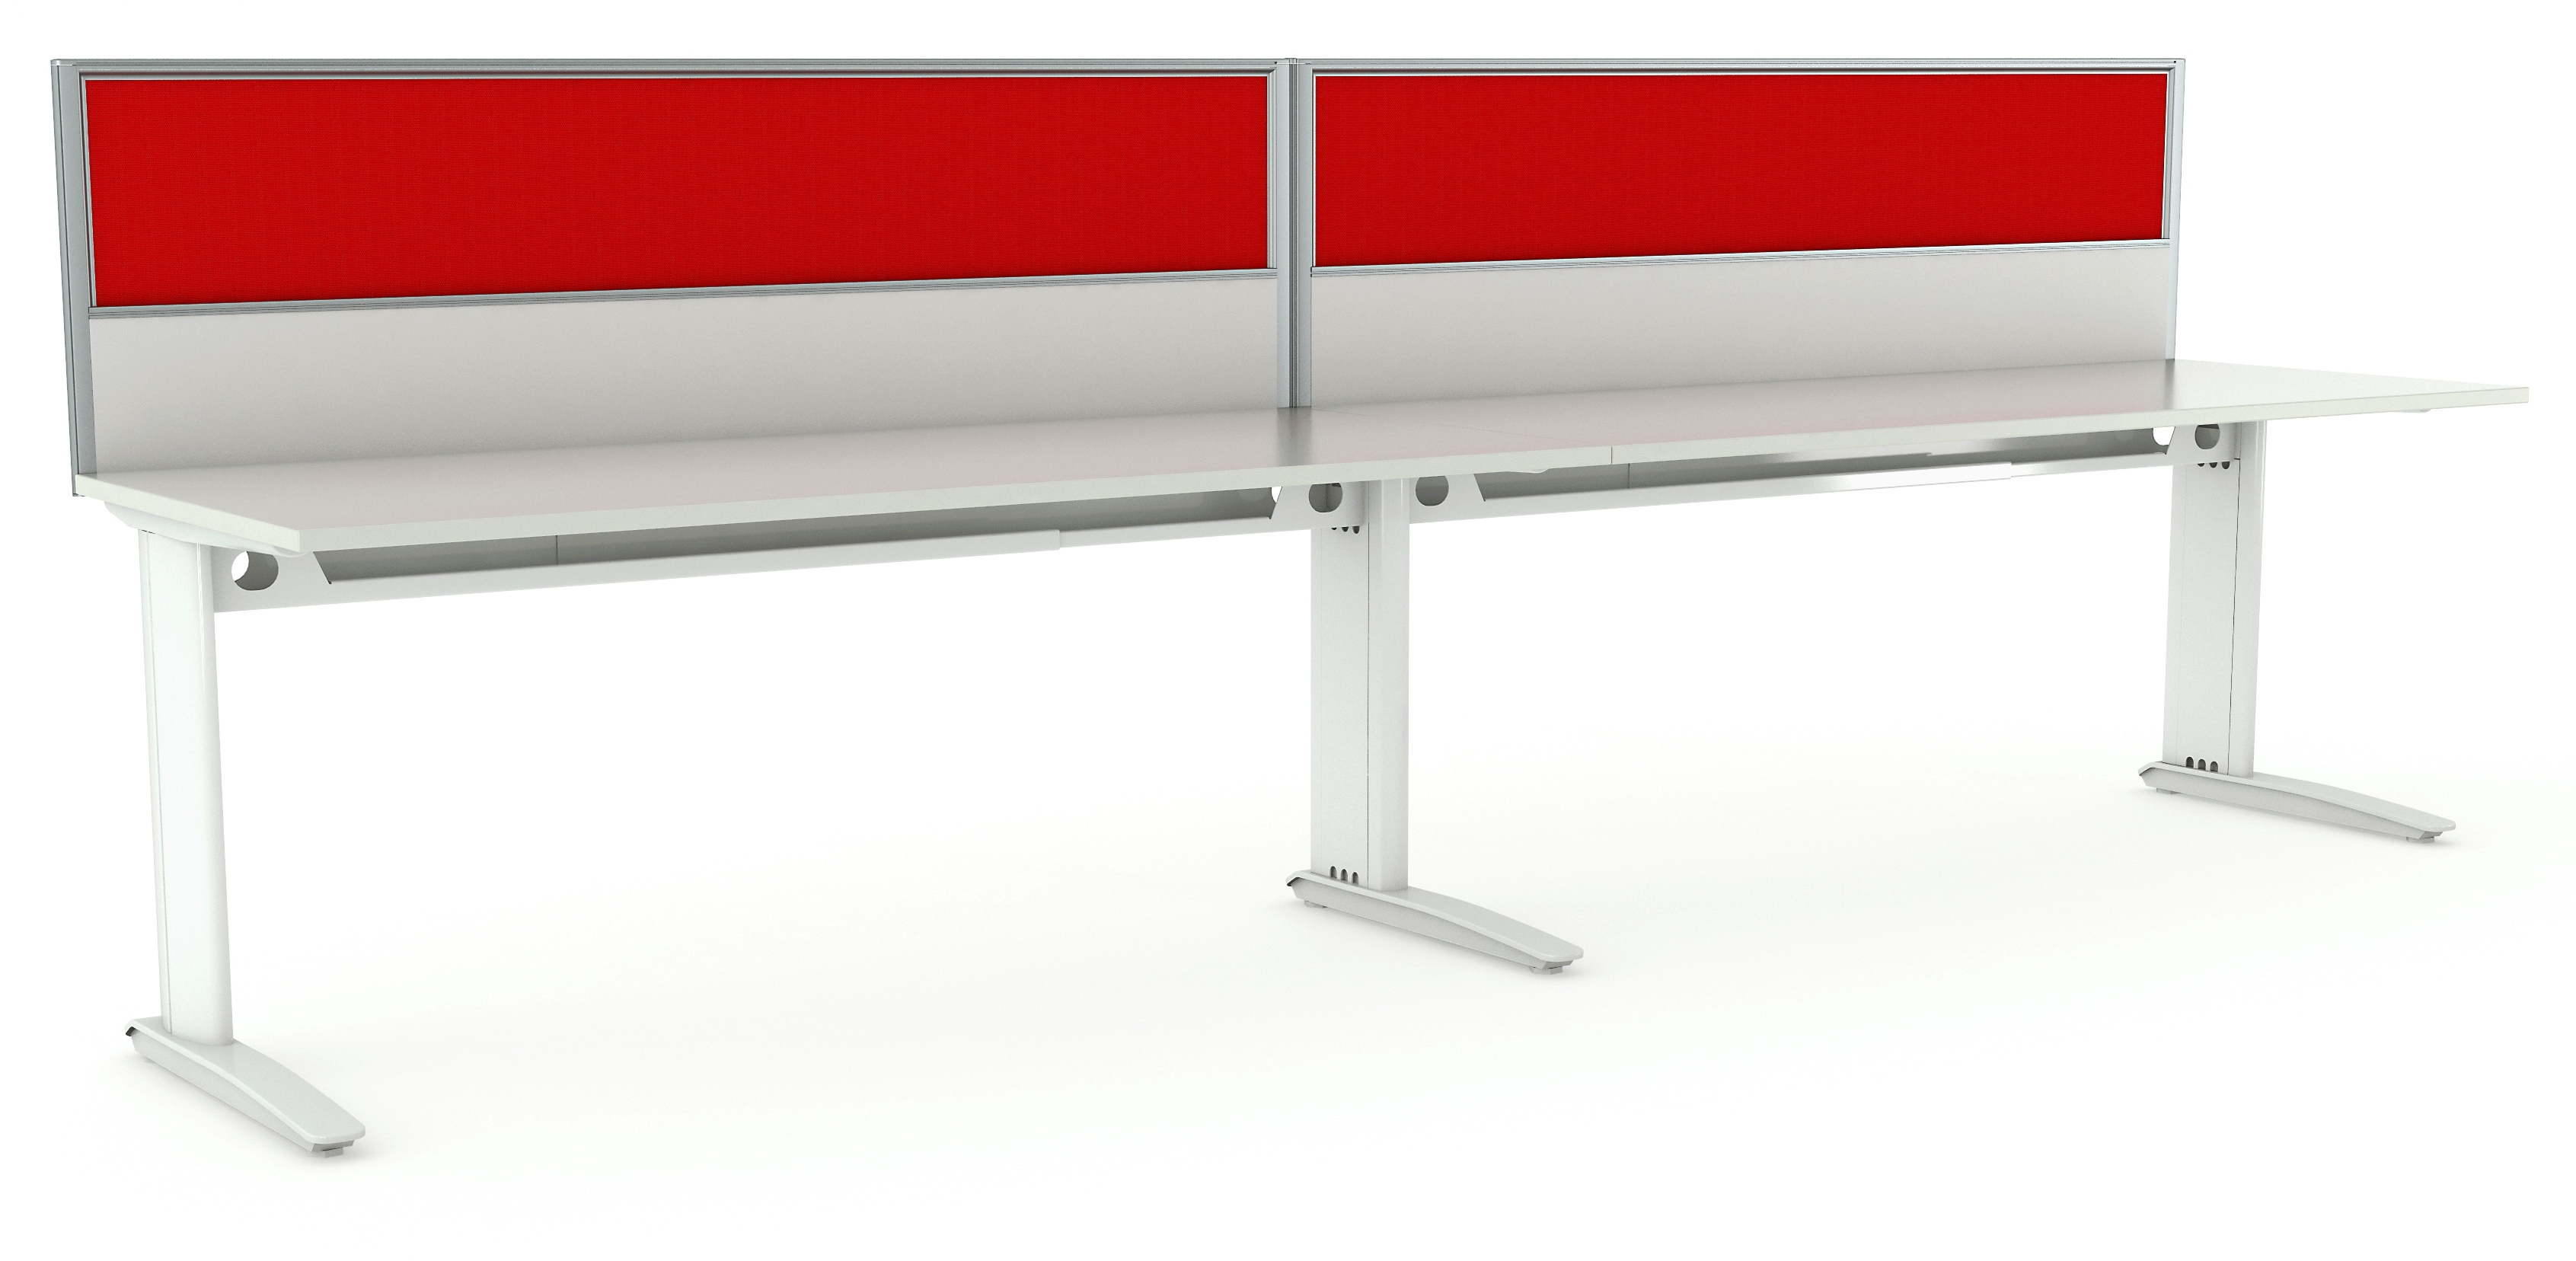 Aero White Desks x2 w Screens